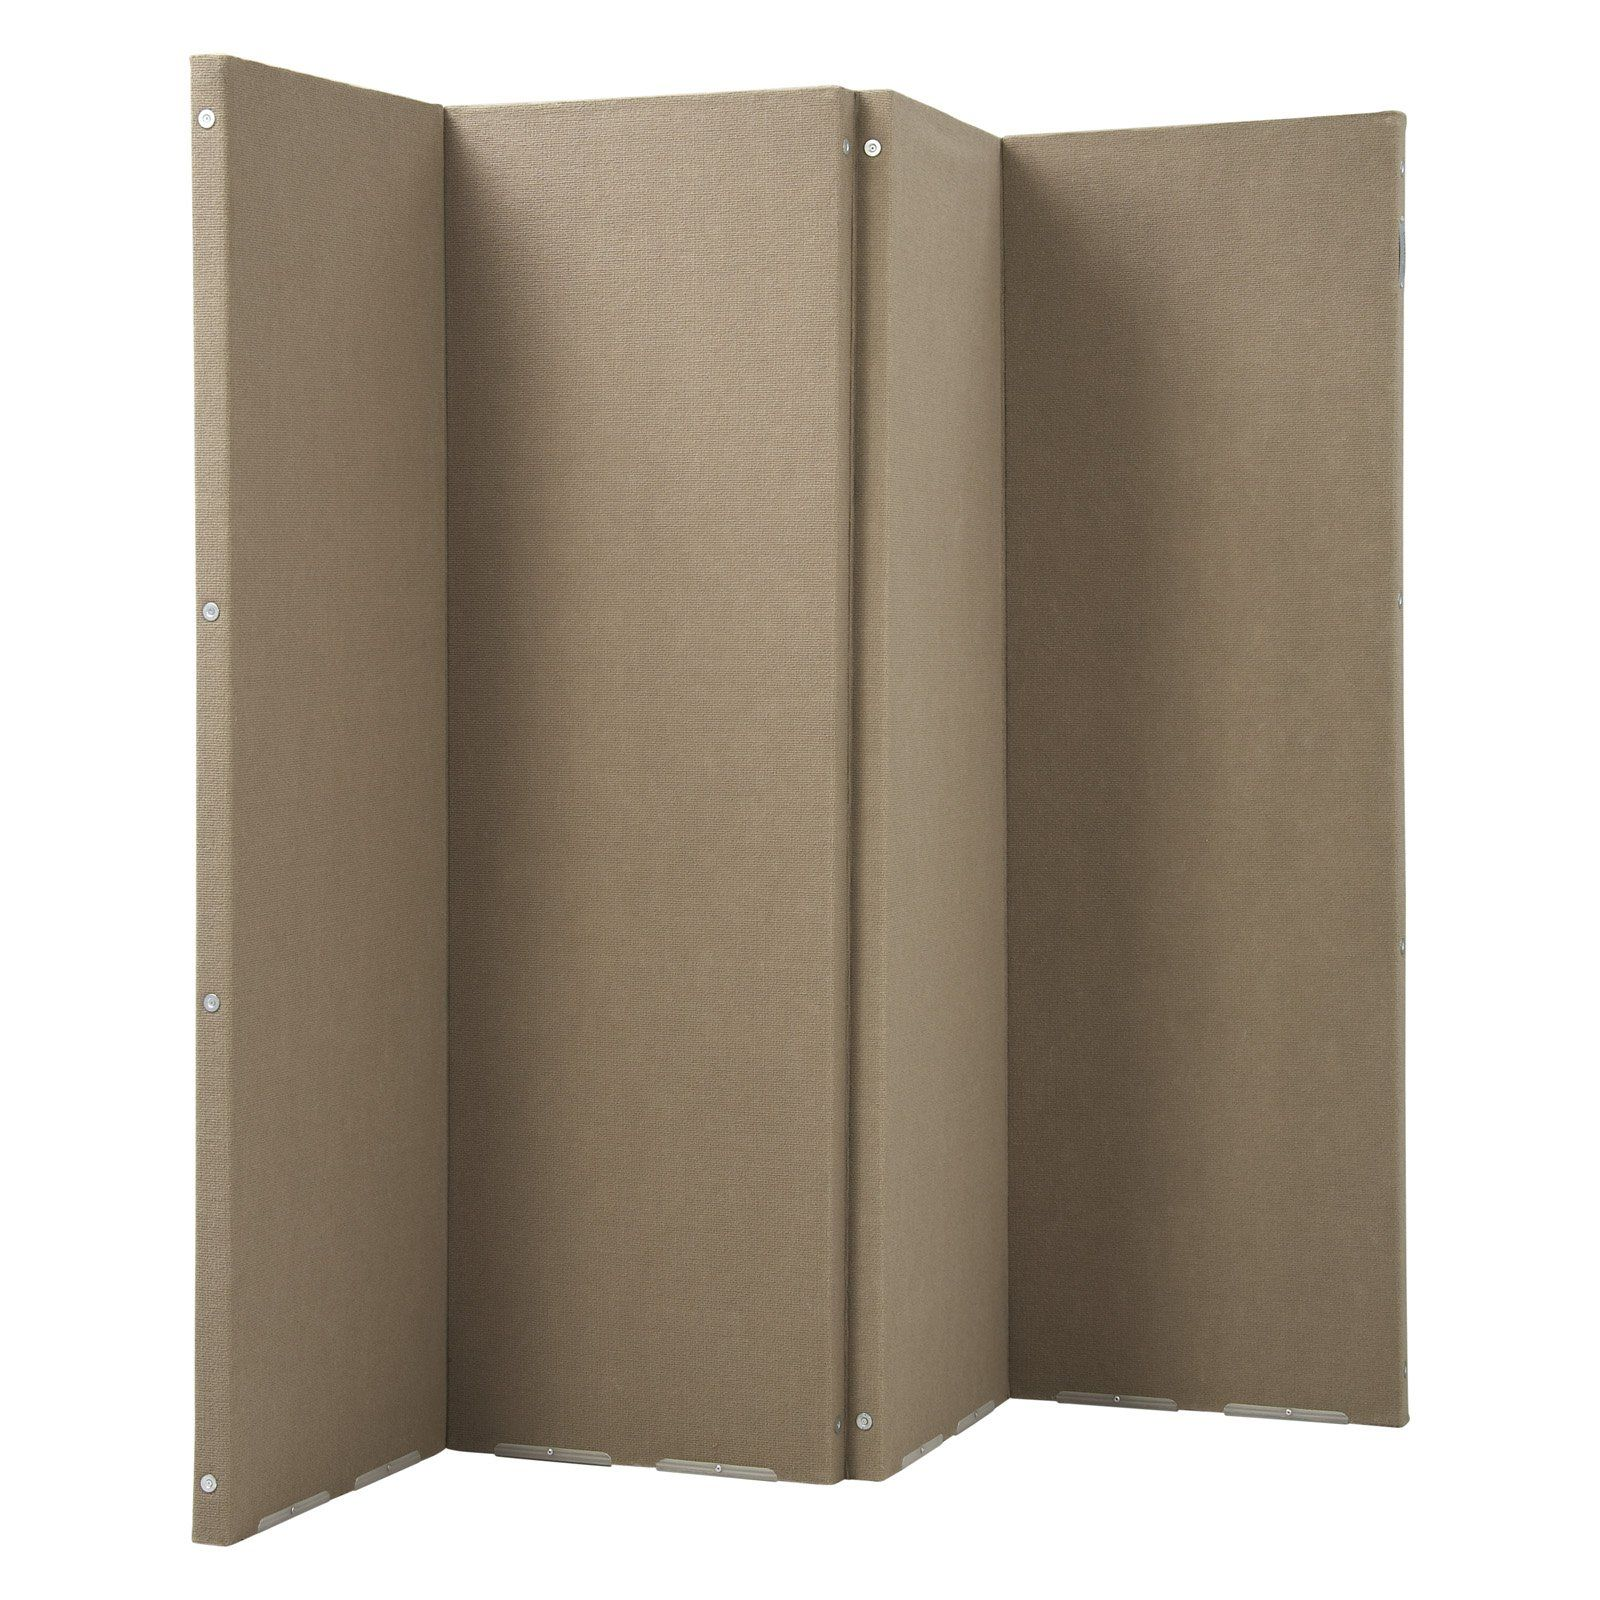 Versare versifold sound control room divider w x h ft from